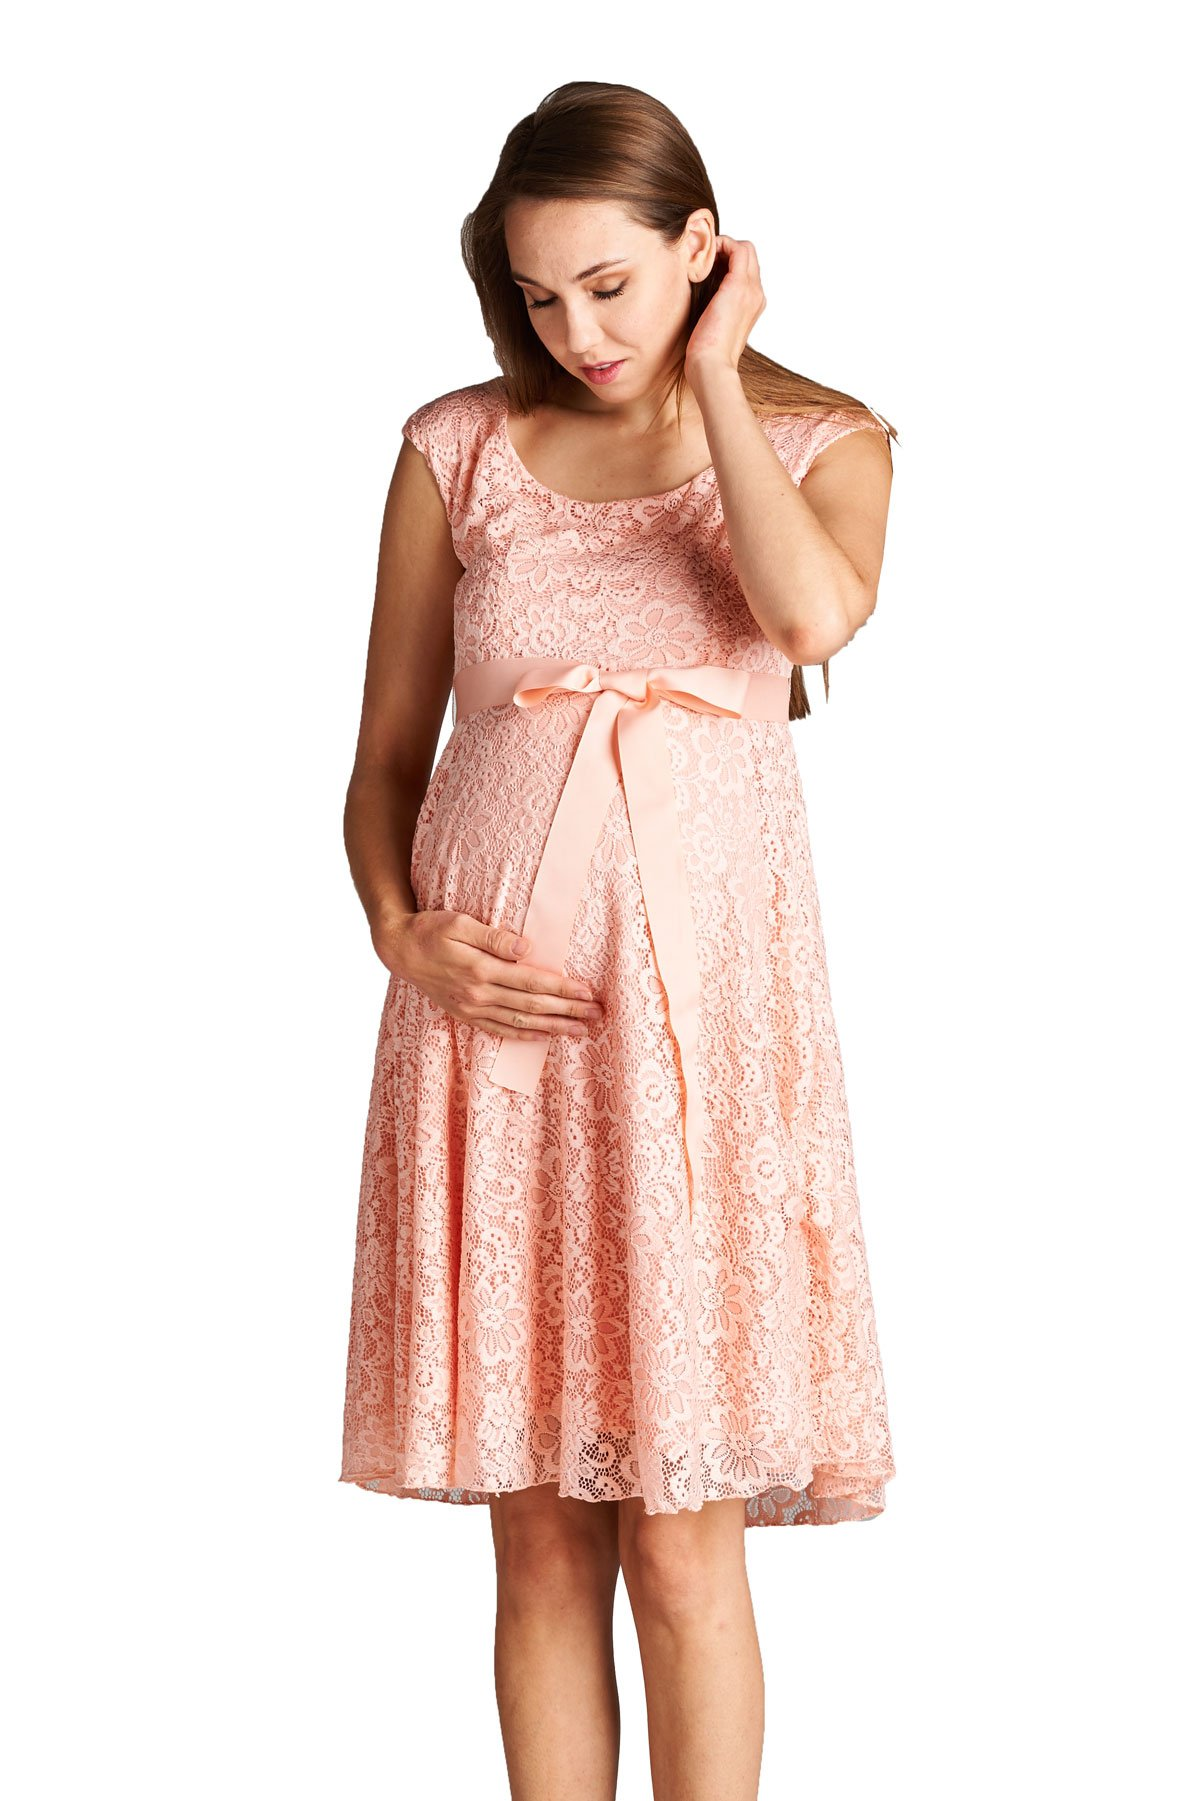 Hello MIZ Floral Lace Baby Shower Party Cocktail Dress with Satin Waist Maternity Dress (Small, Light Pink)